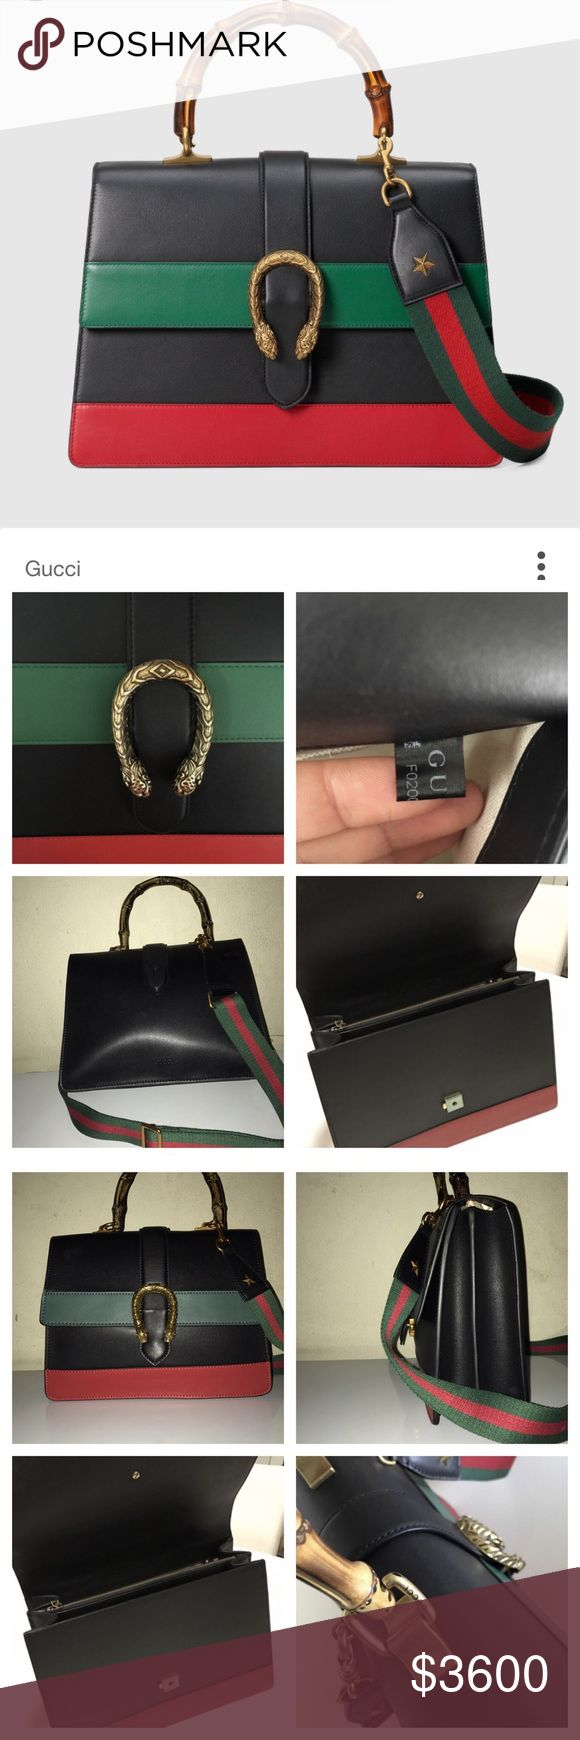 f9256bb2b Gucci Dionysus Bamboo Top Handle 100% Authentic, Worn, Has Some Wear to it